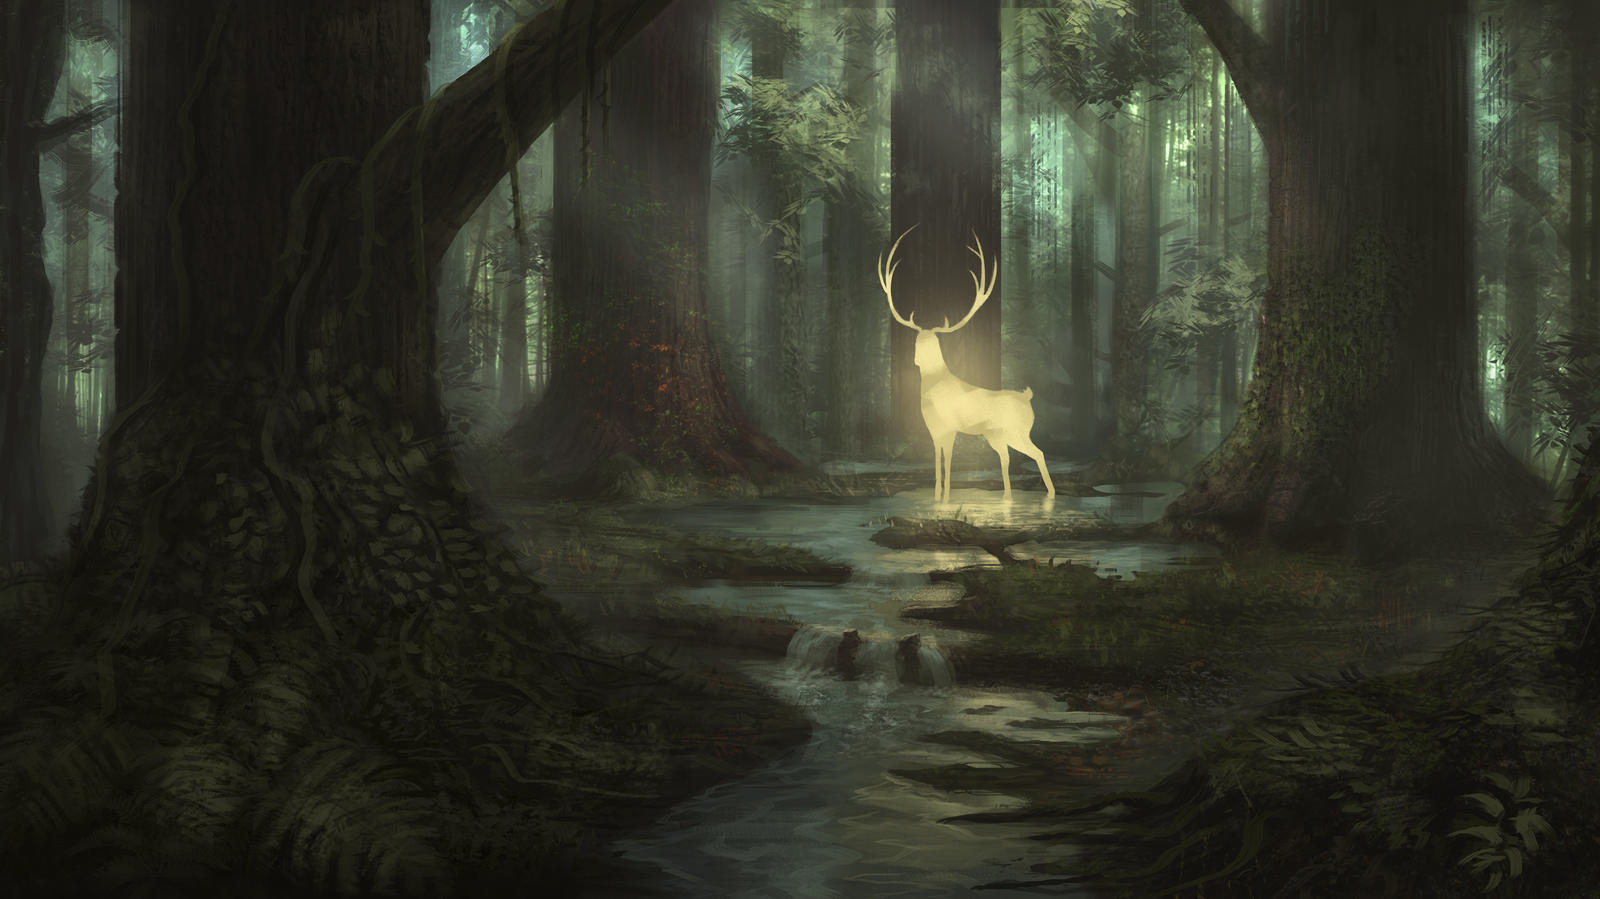 Magic Deer by Sucdeportocale